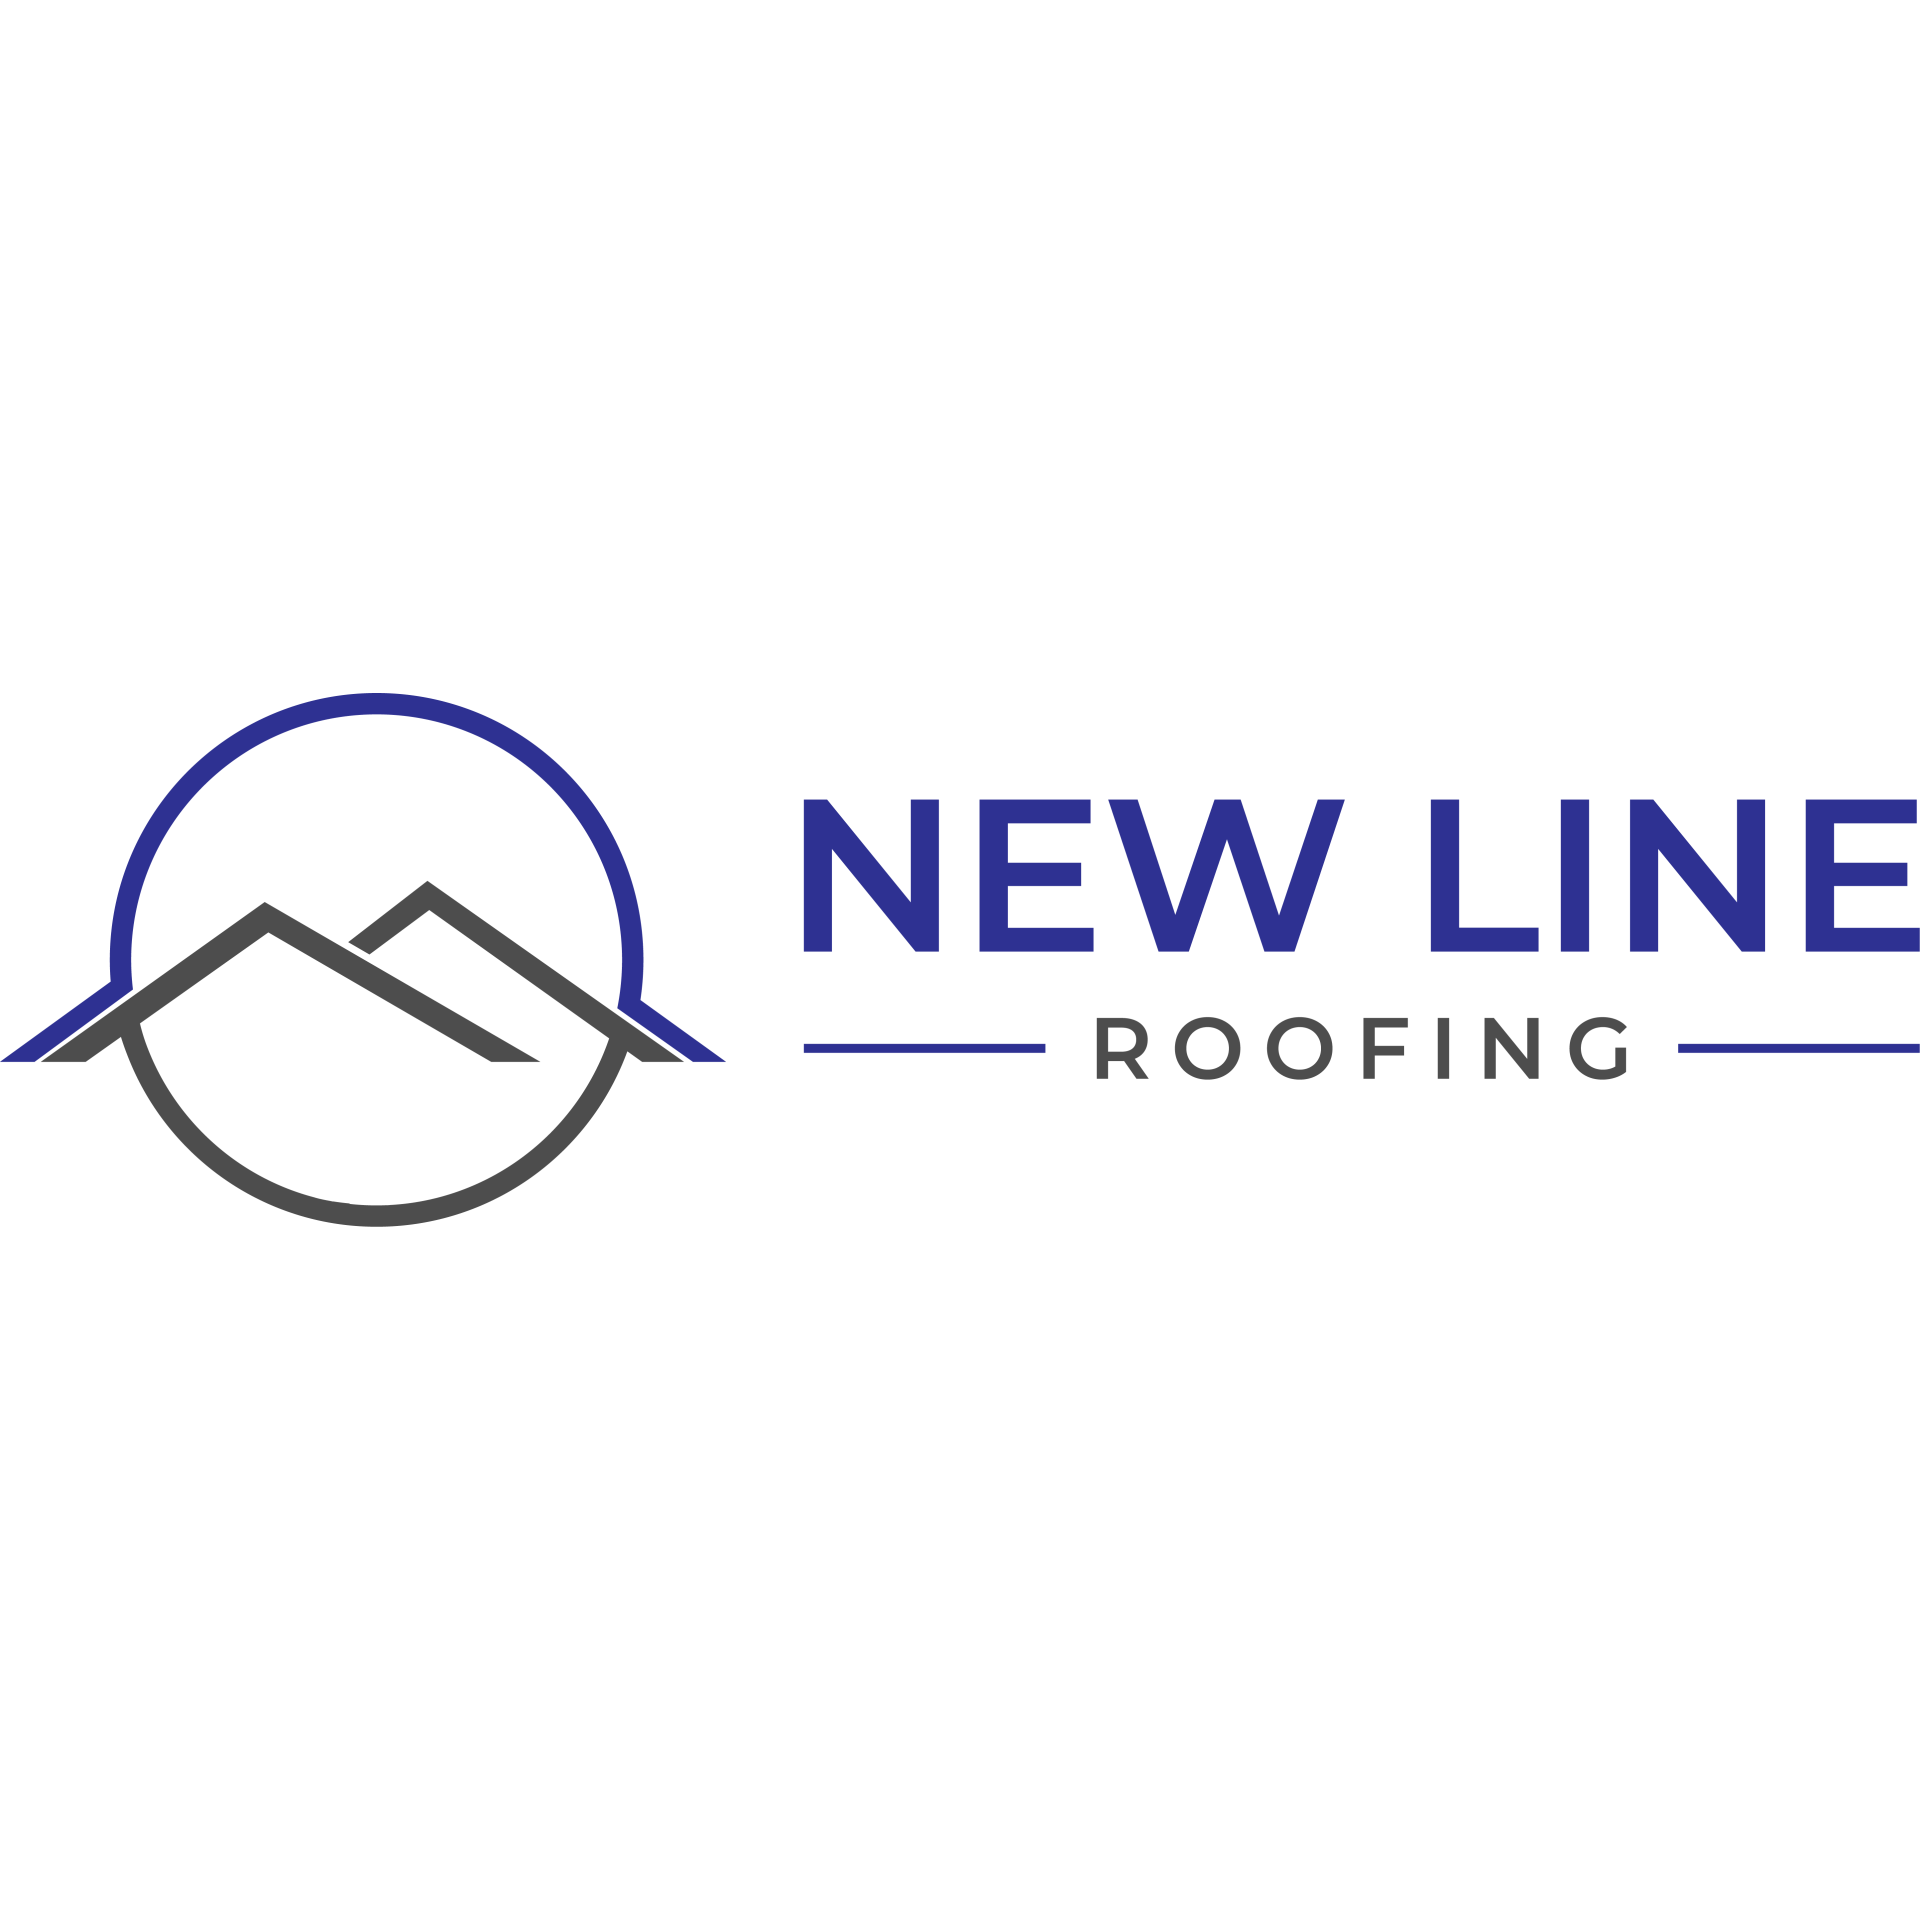 New Line Roofing